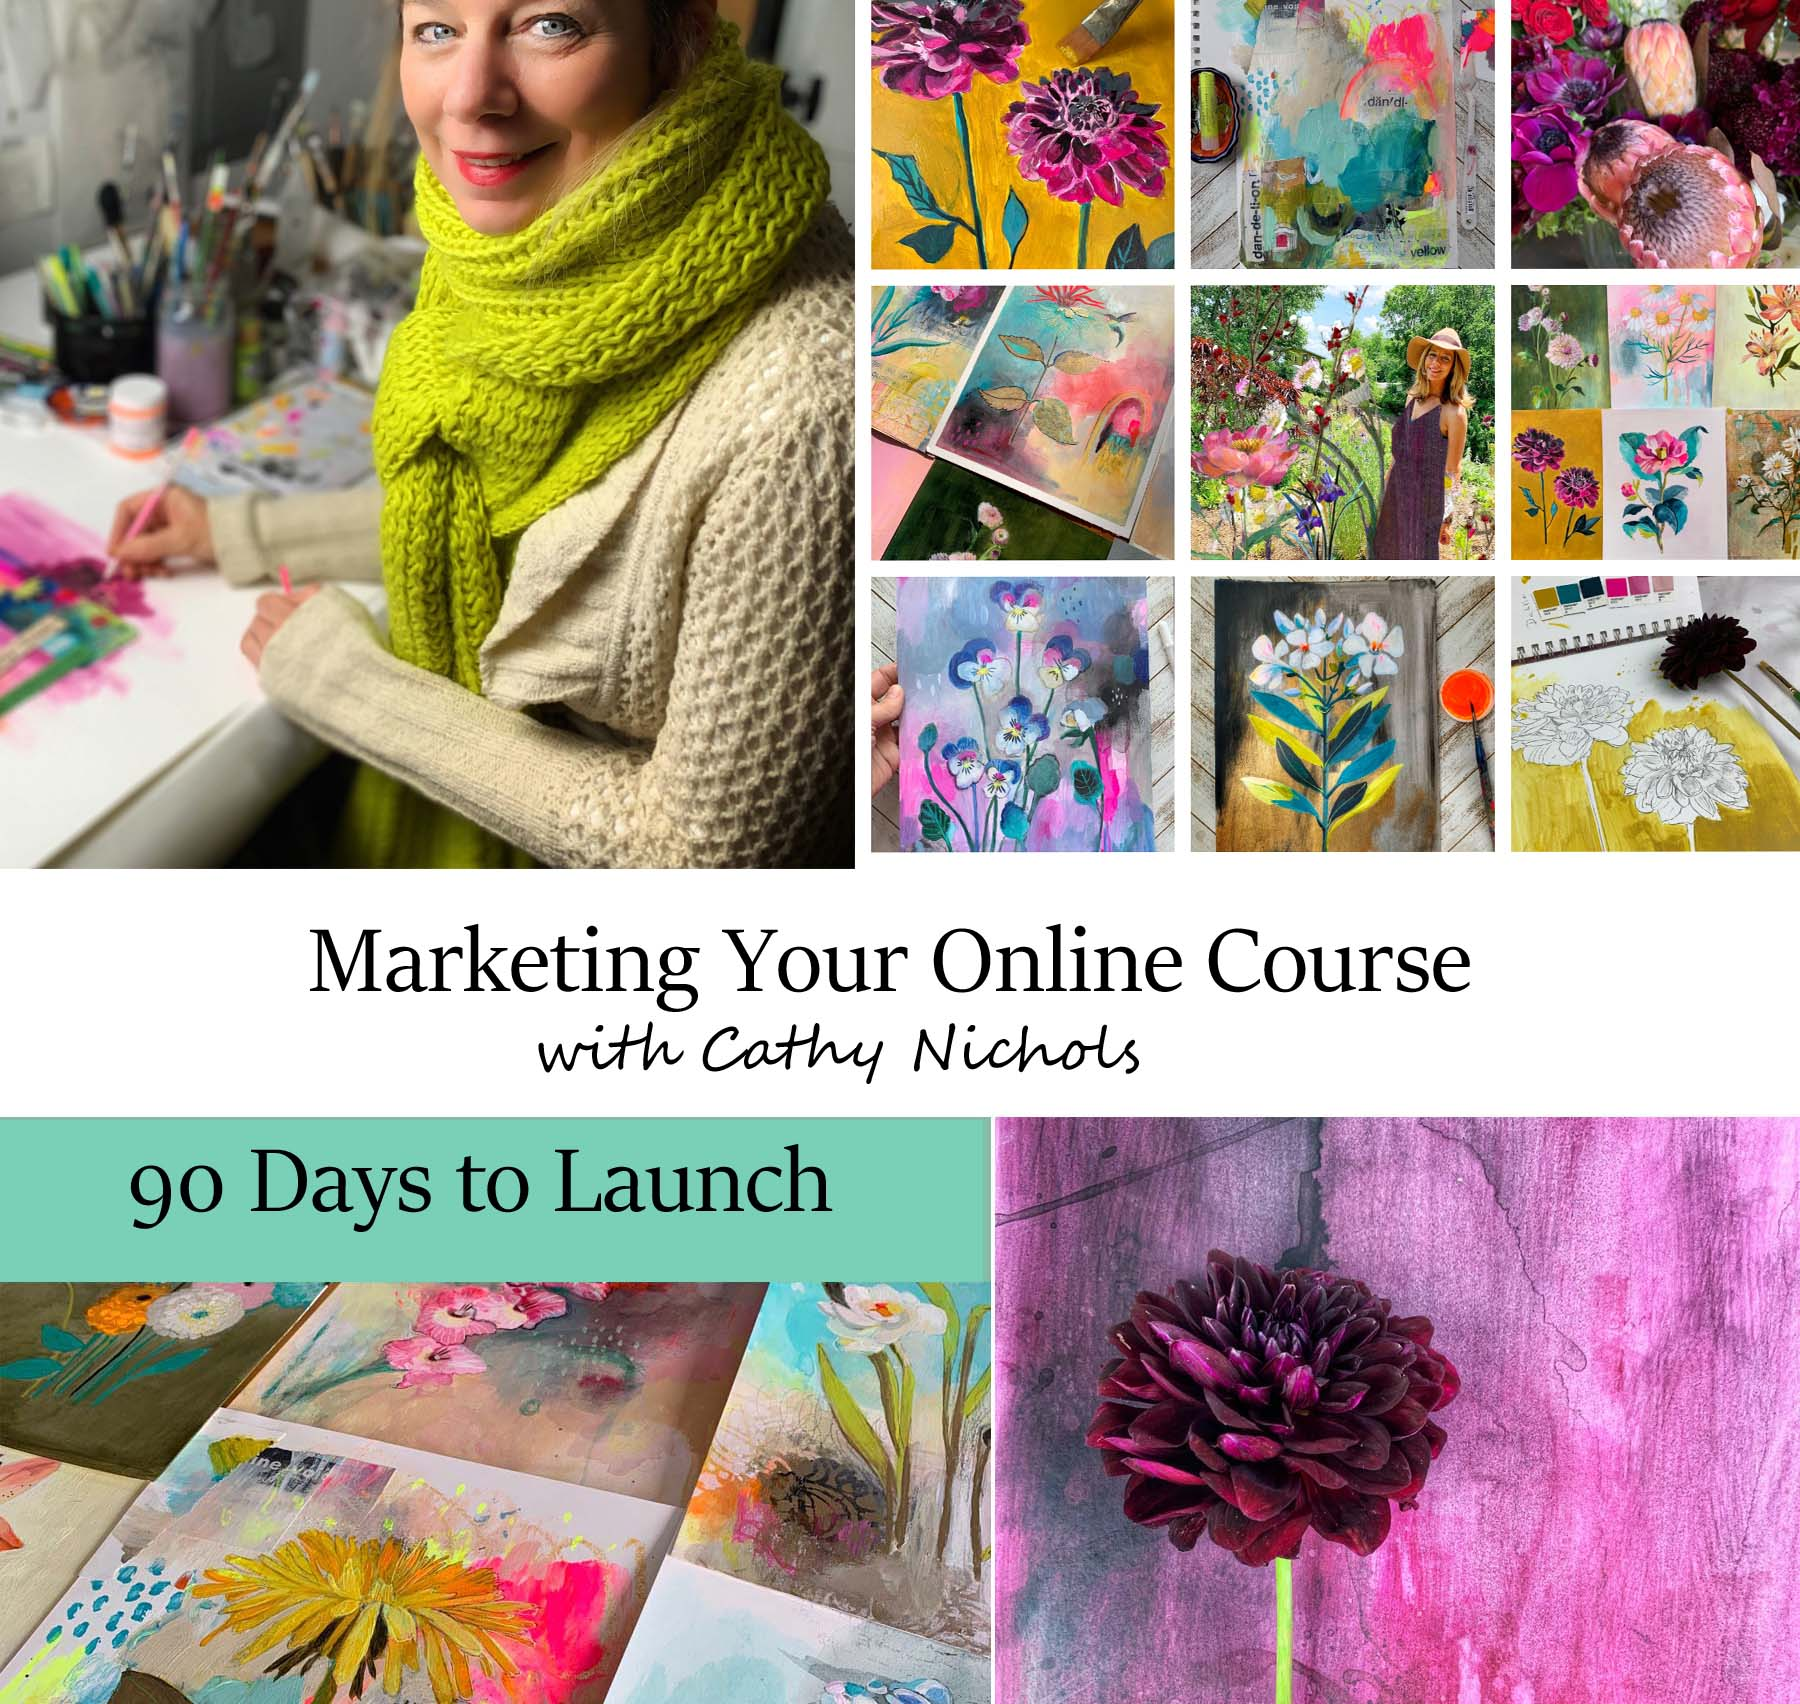 Marketing Your Online Course: 90 DAYS to LAUNCH